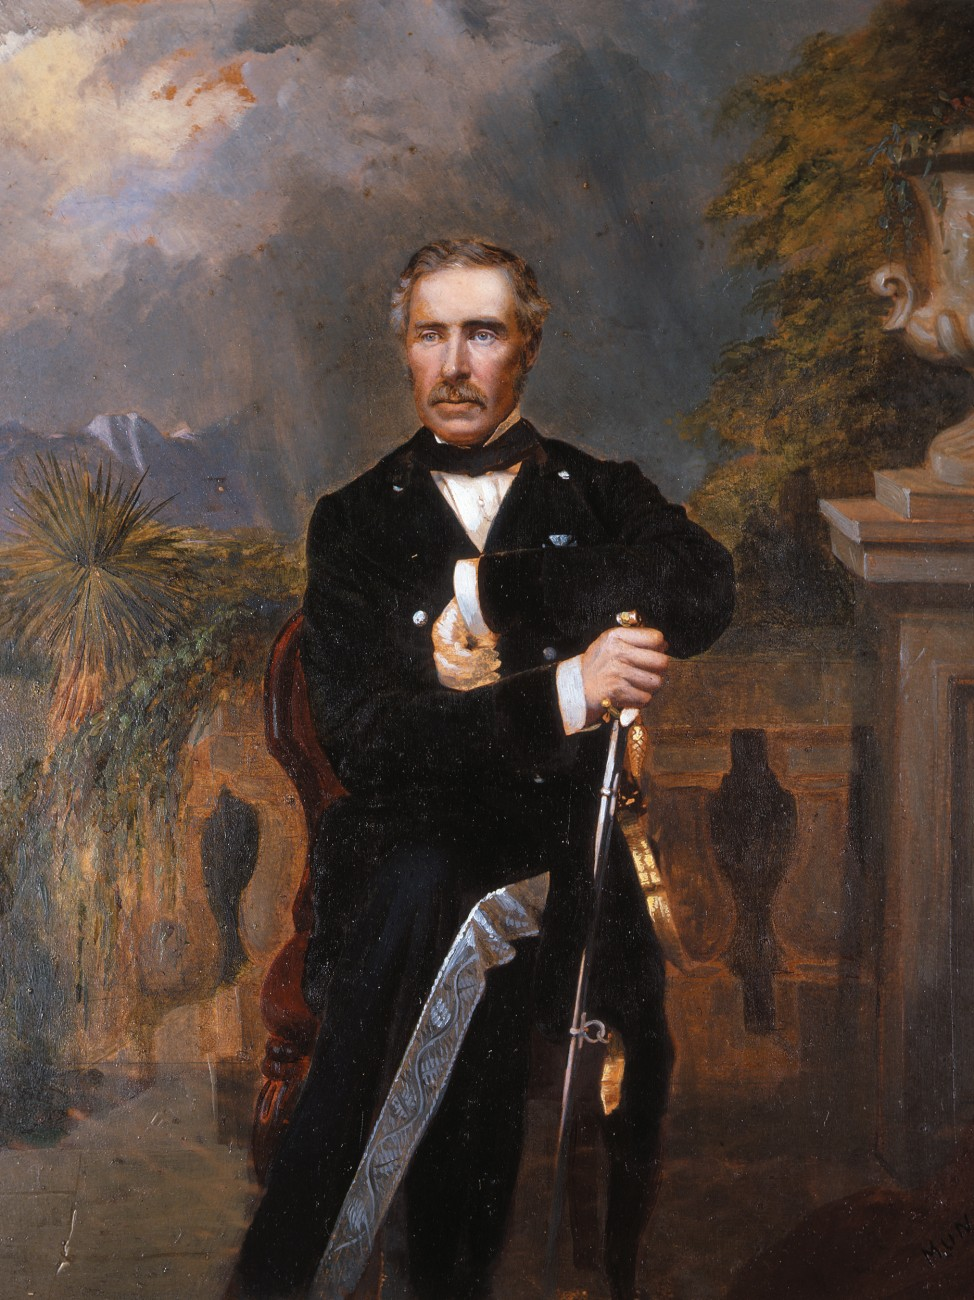 """Sir George was his own political party all through life, so far as he was a politician at all,"" wrote biographer James Milne. Grey's autocratic bearing as the ""Bonaparte of the South Seas"" is well captured in this hand-coloured photograph, taken in the 1860s during his second term as governor. The background painting contains details from Mansion House."